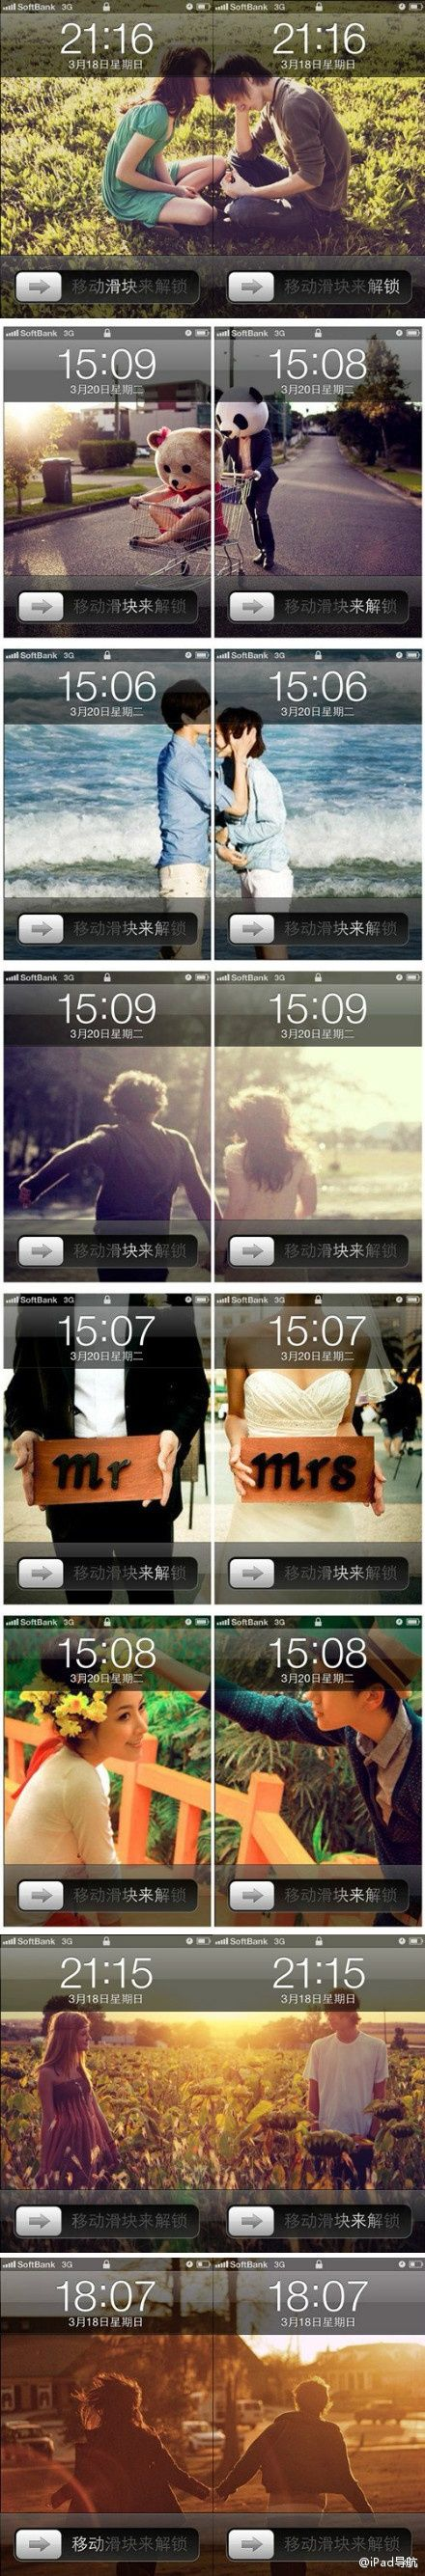 His & Her's, cell phone backgrounds of their couple pictures split to see the…